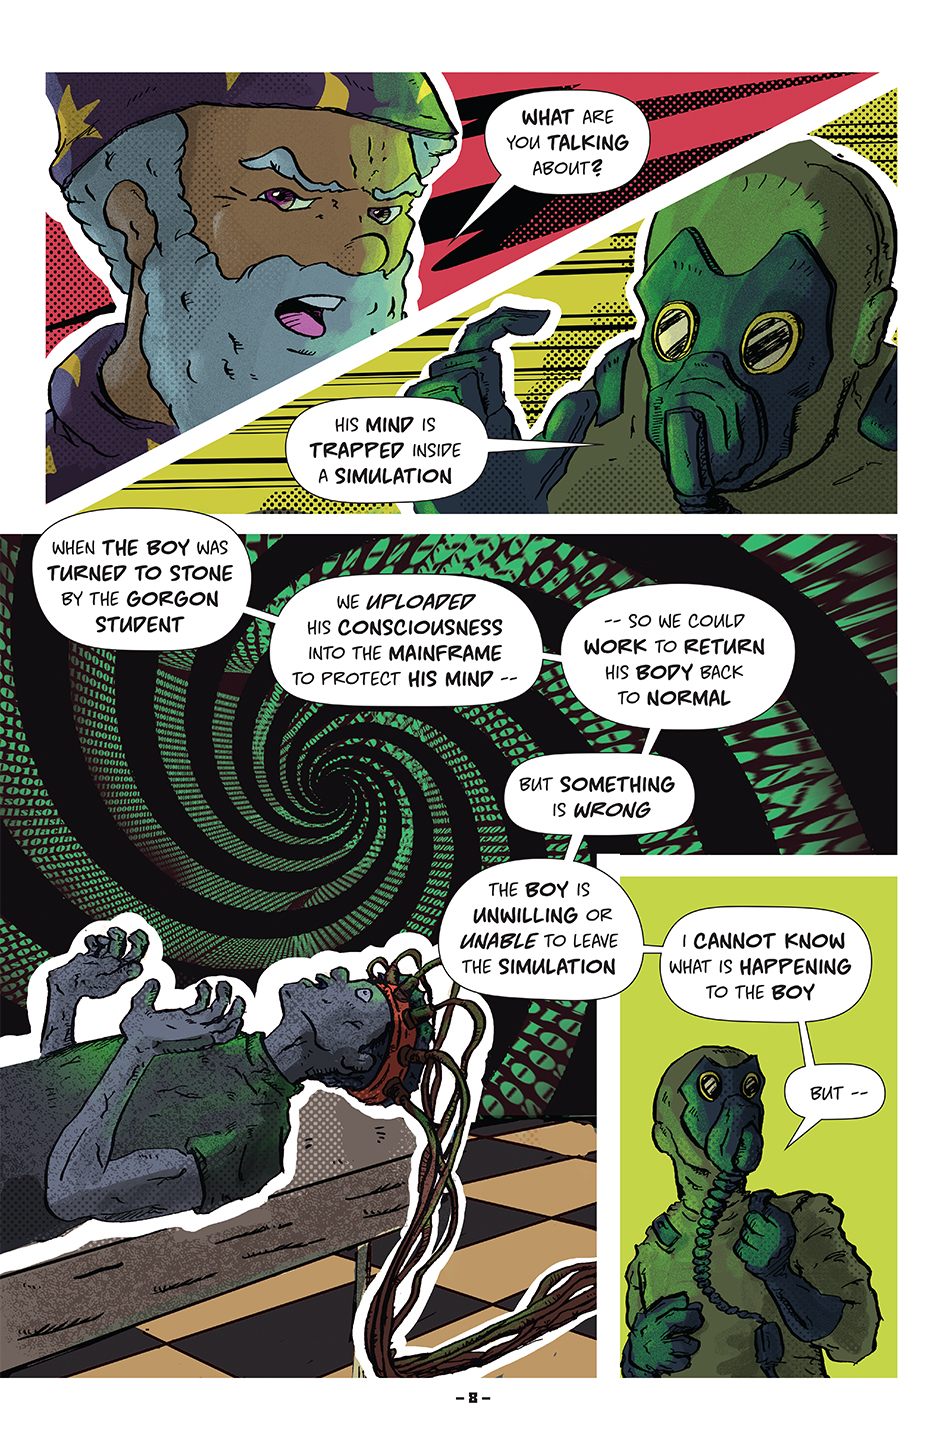 SBTB Issue 7, Page 8